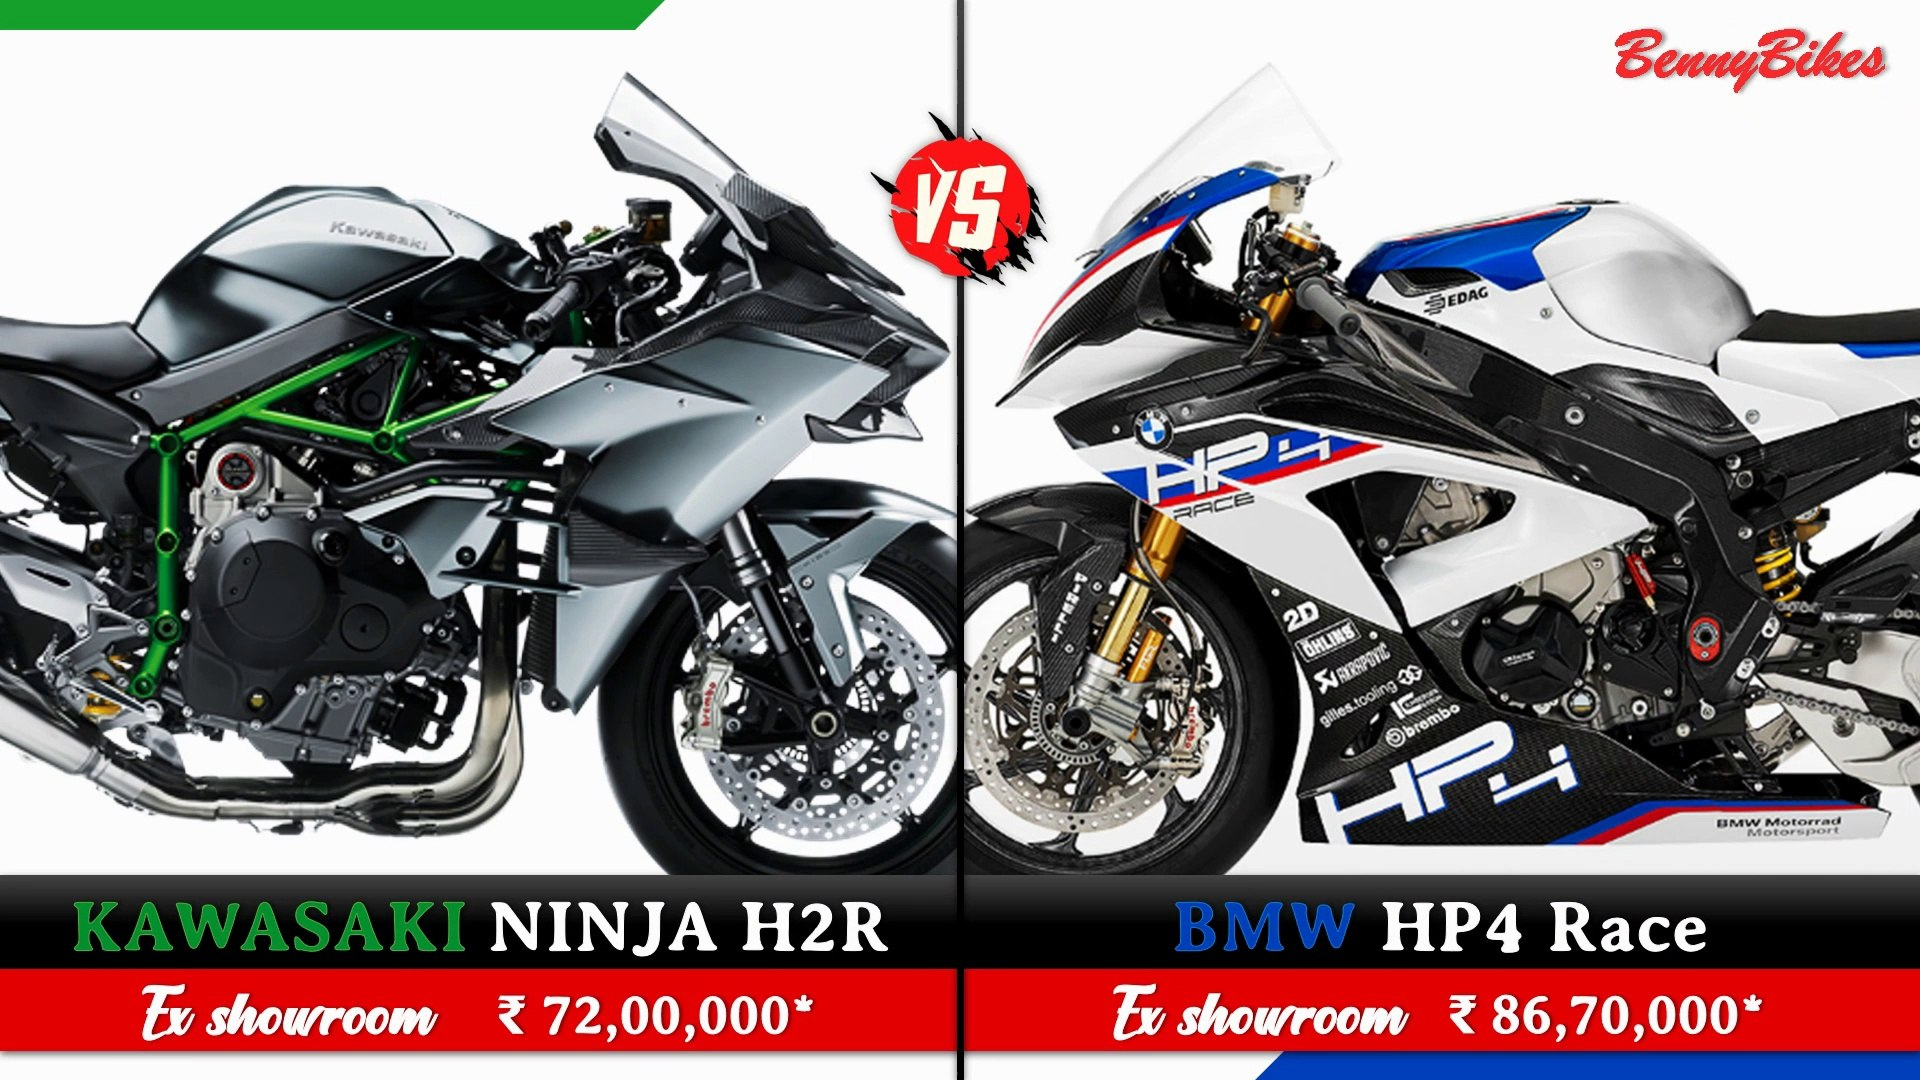 2019 Kawasaki Ninja H2r Vs 2019 Bmw Hp4 Race Ninja H2r Vs Hp4 Kawasaki Vs Bmw Video Dailymotion